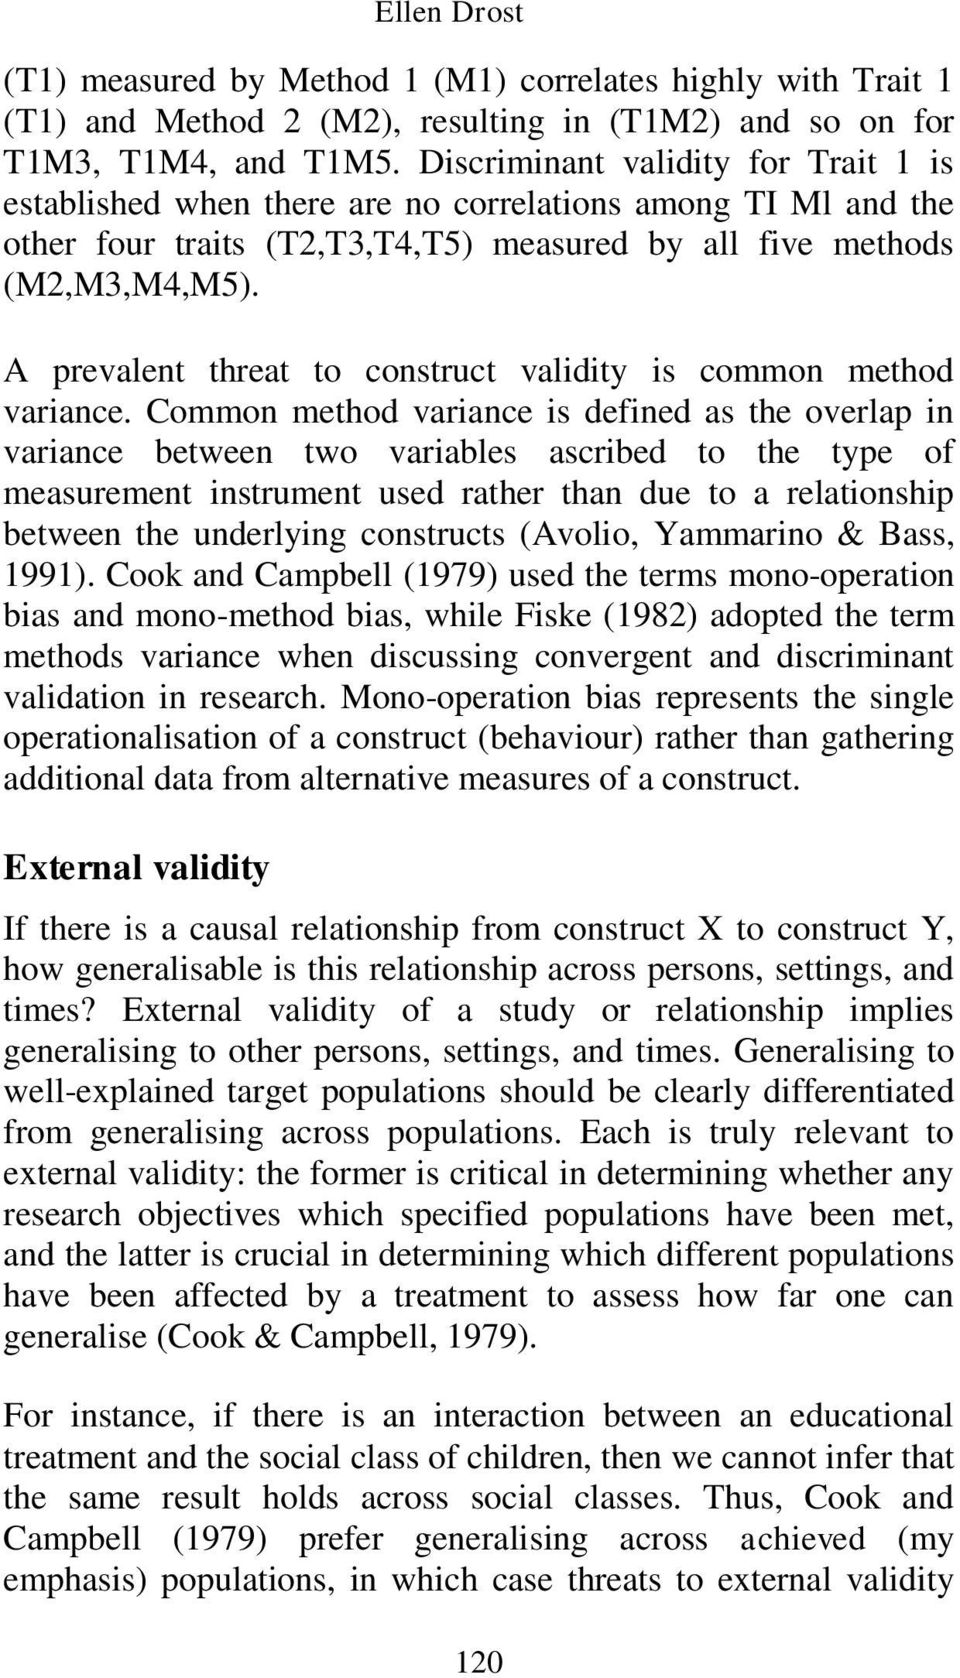 A prevalent threat to construct validity is common method variance.